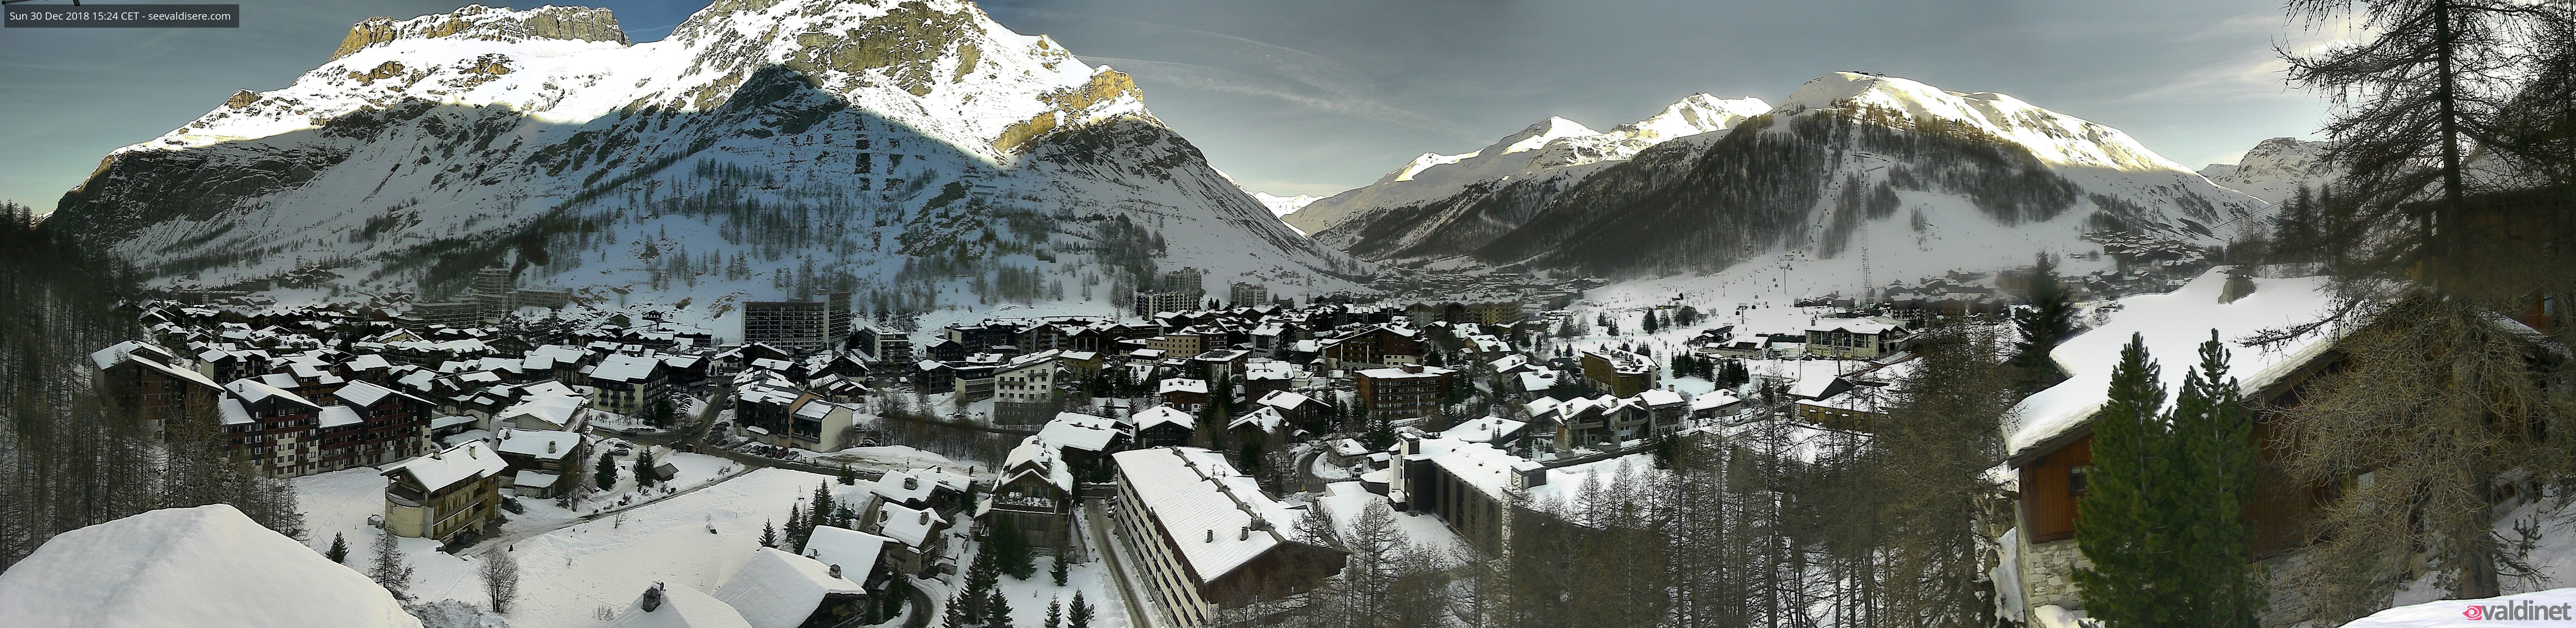 Webcam Val d'Isere